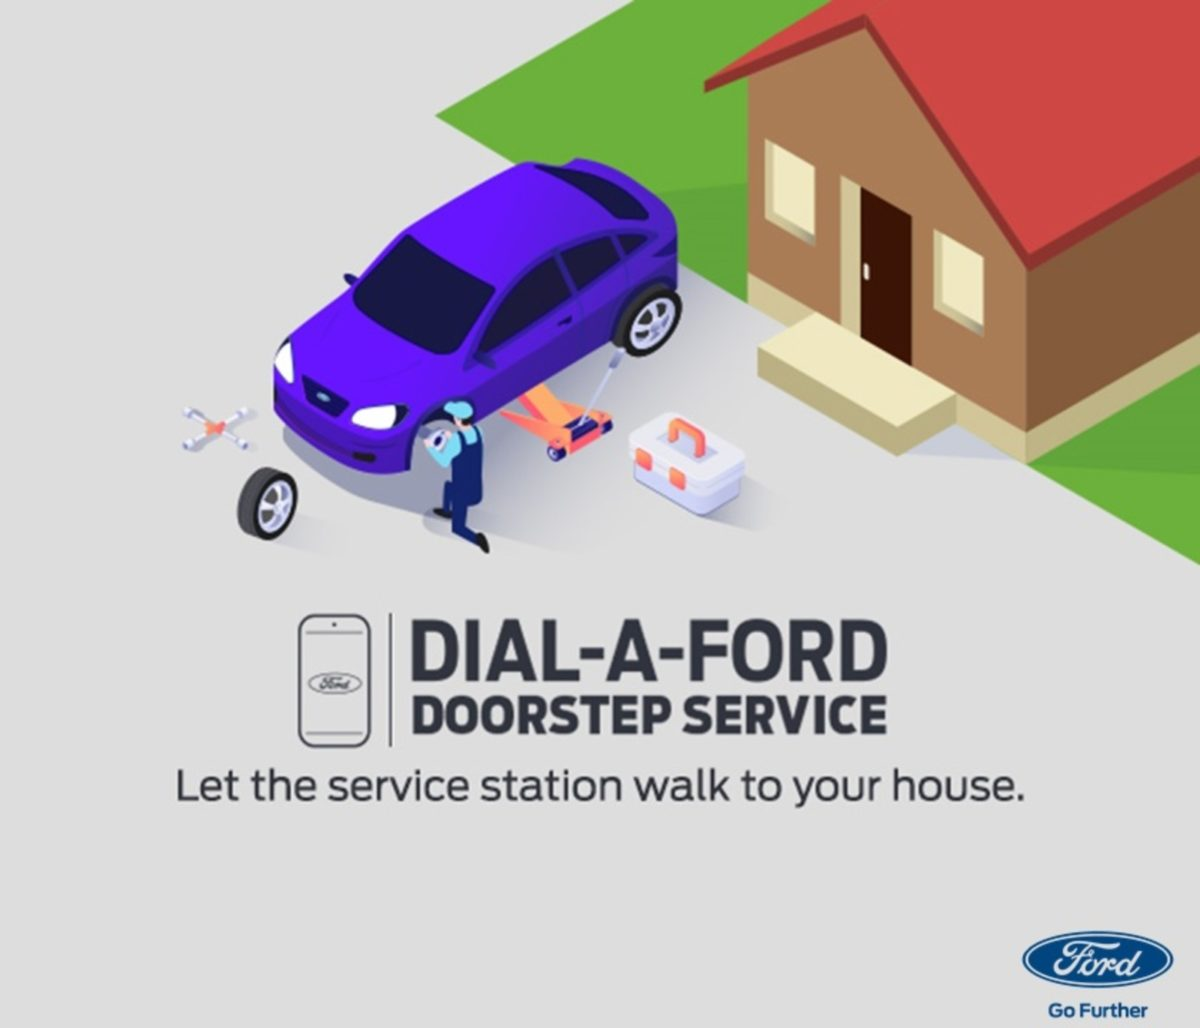 Ford Doorstep Service (1)